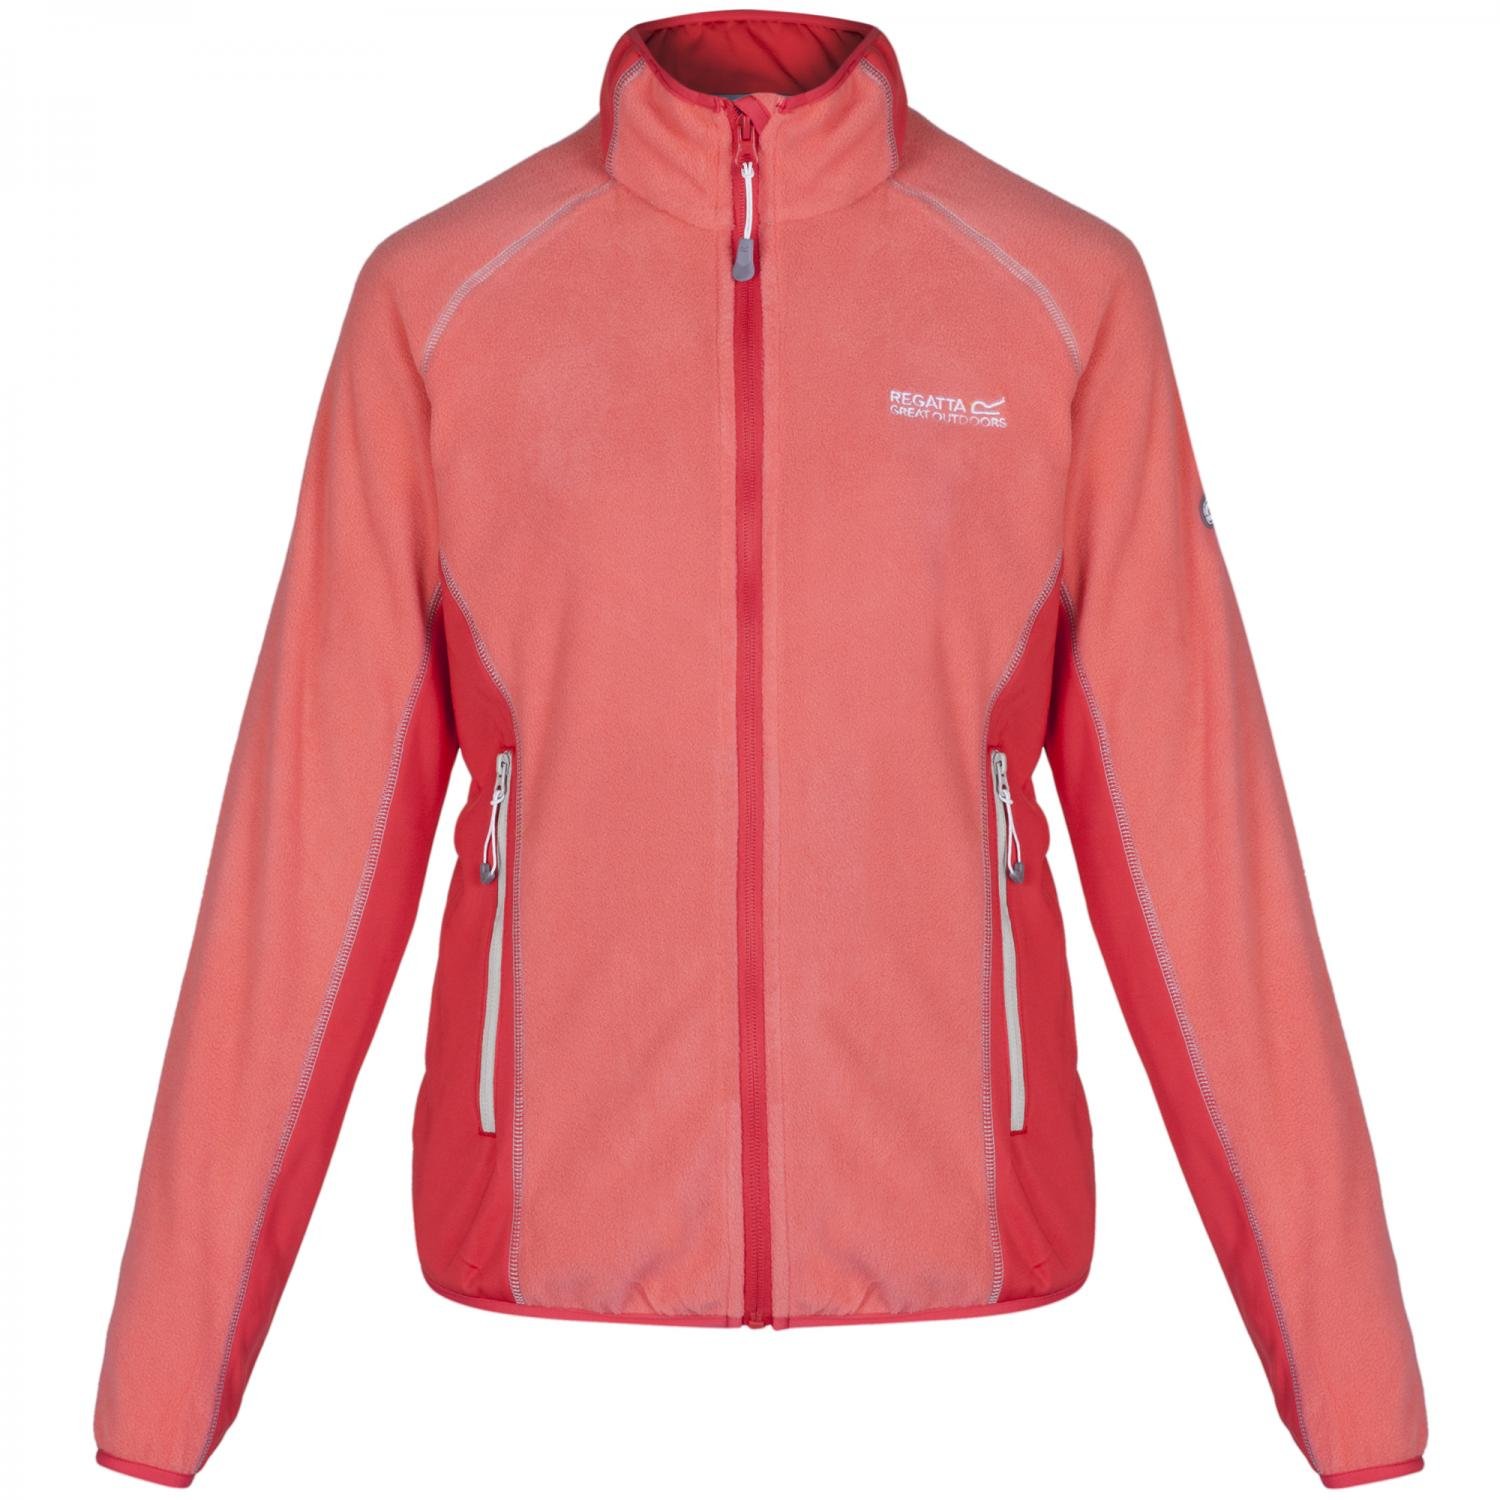 Shop women's zip-up fleece jackets from Steep & Cheap for great prices on big brands, including The North Face, Patagonia, Marmot, and Columbia.